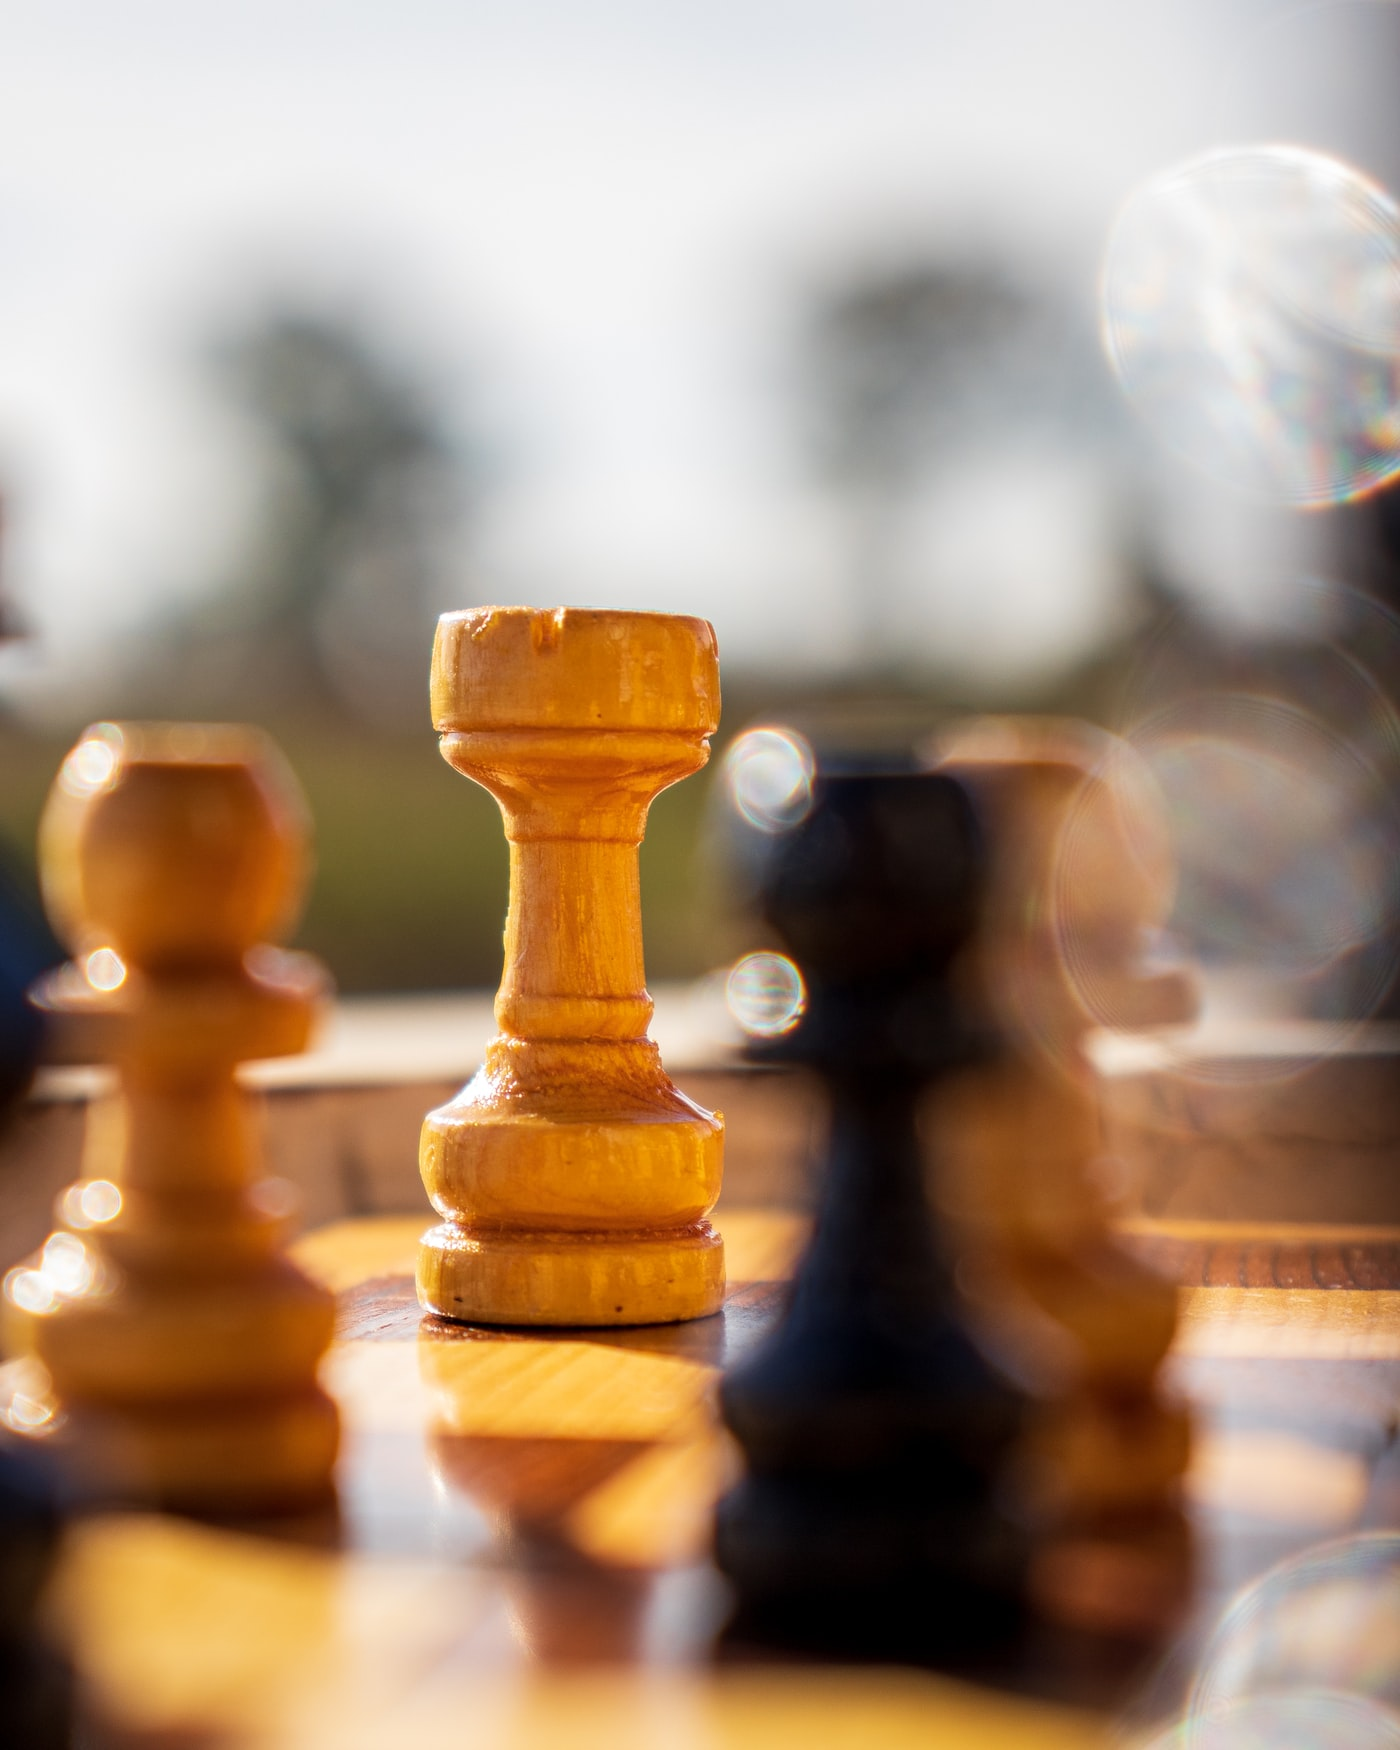 Chess board with the king in focus